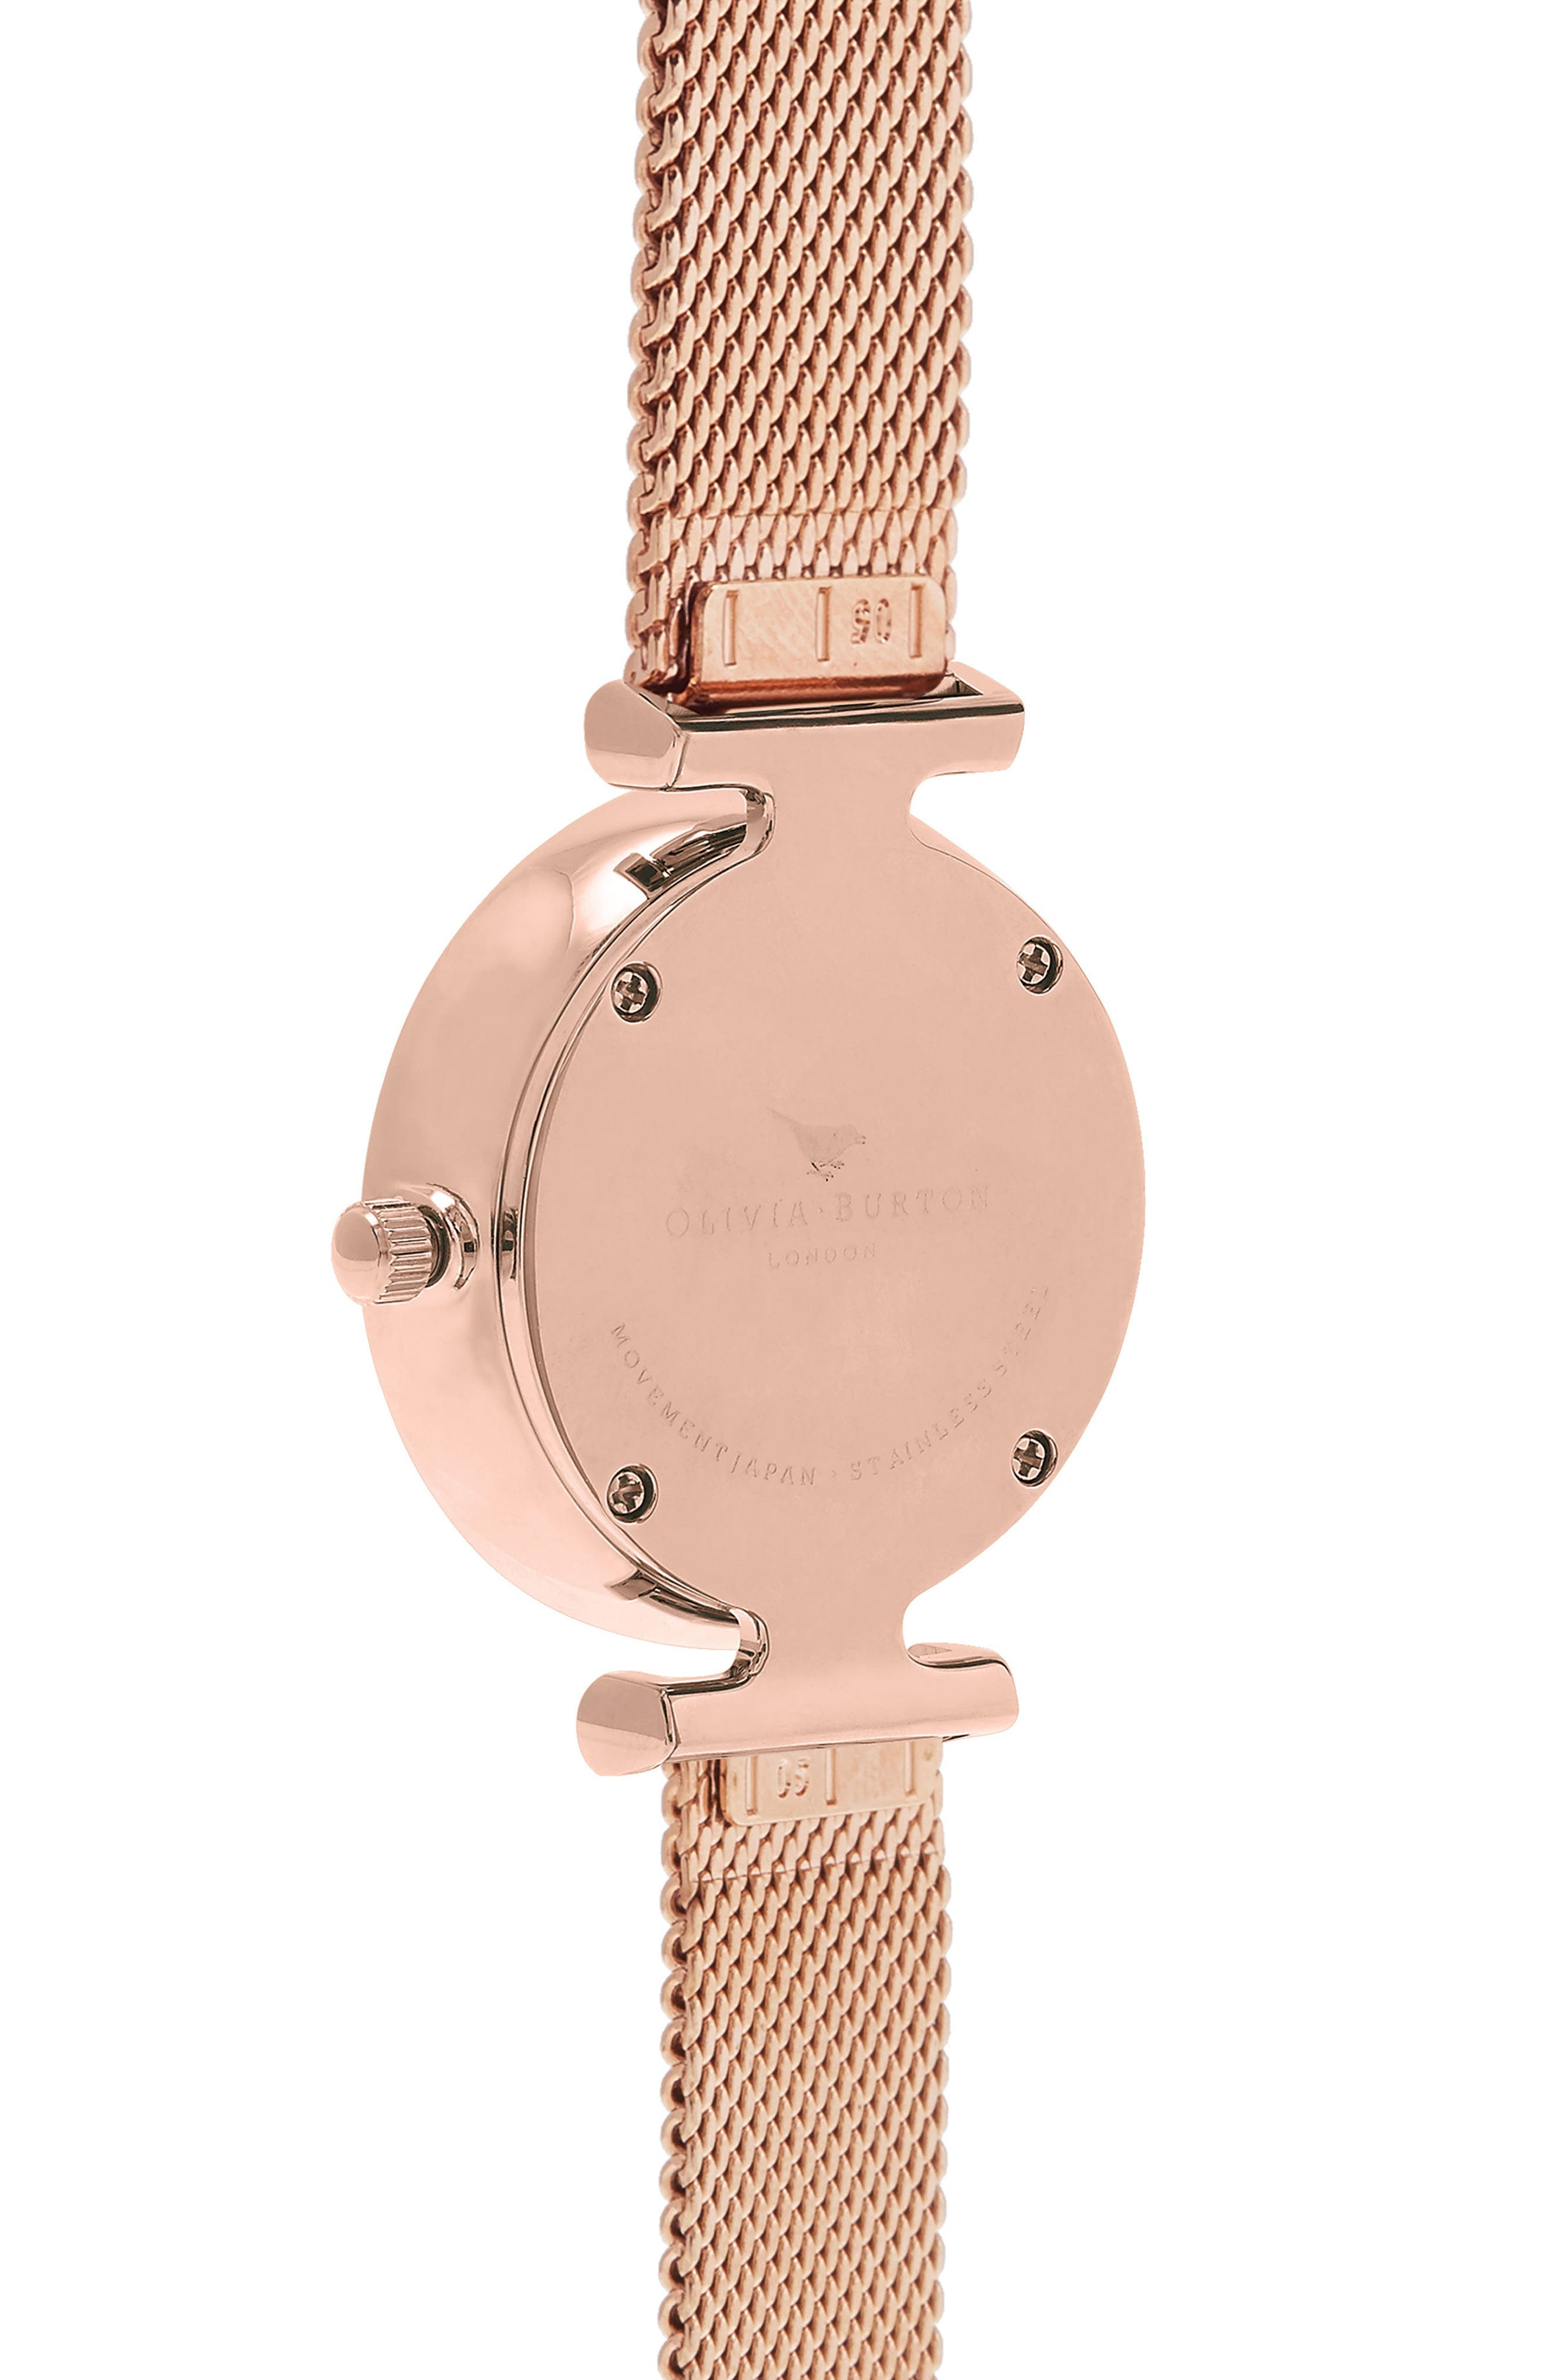 Queen Bee Mesh Strap Watch, 30mm,                             Alternate thumbnail 3, color,                             ROSE GOLD/ BLACK MOP/ SILVER